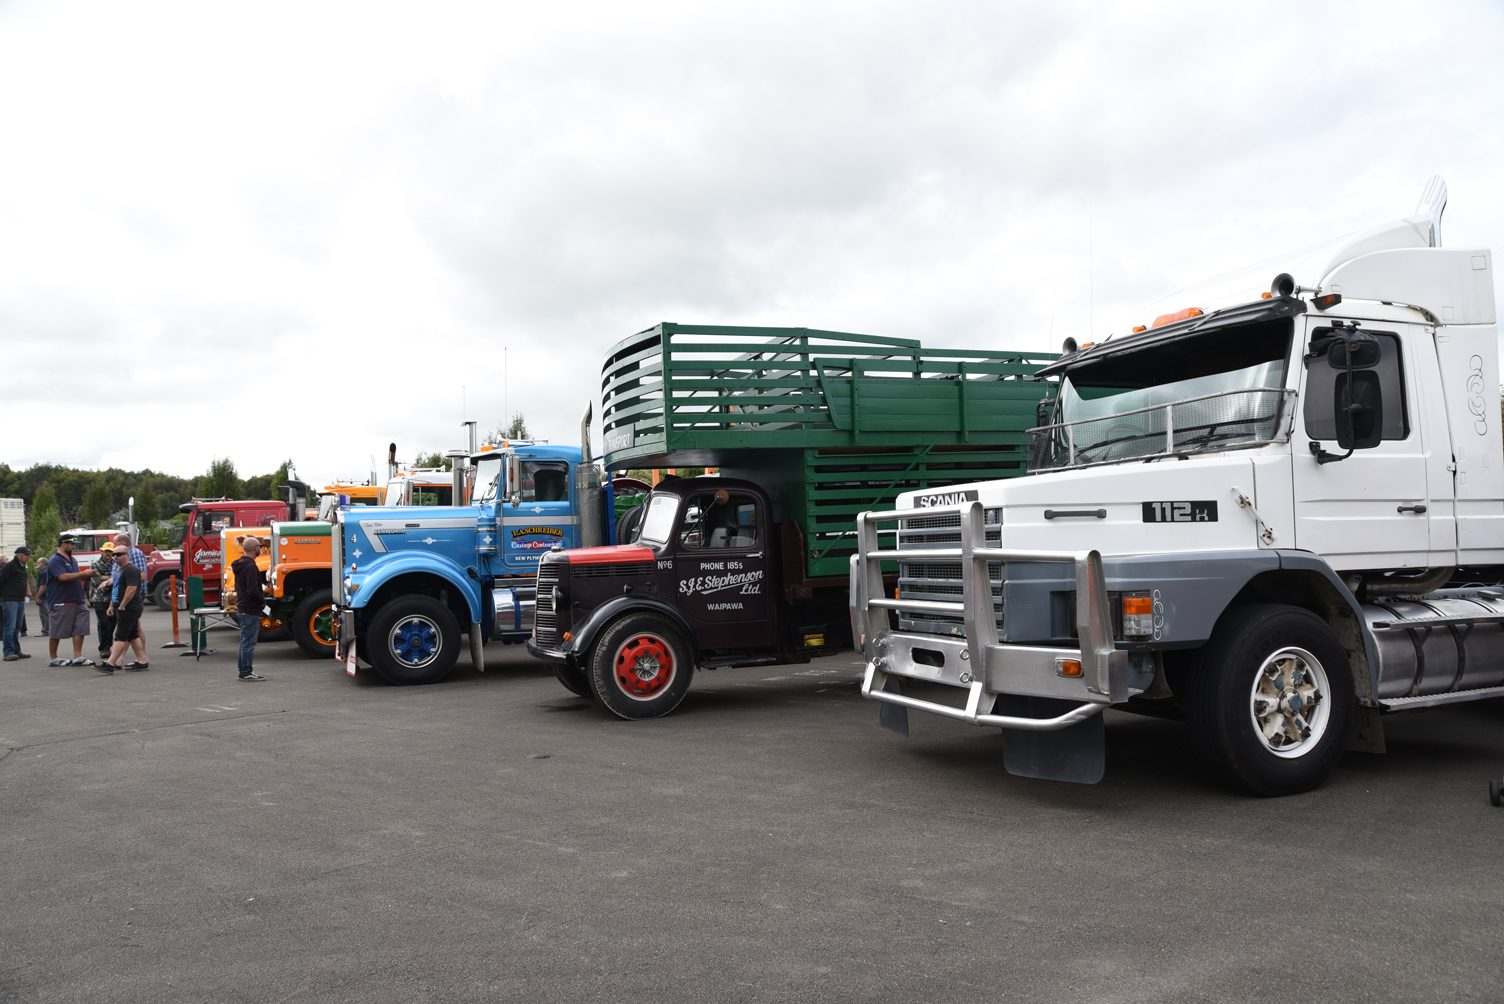 As always, the classicvintage trucks display has a wide range of makes and models